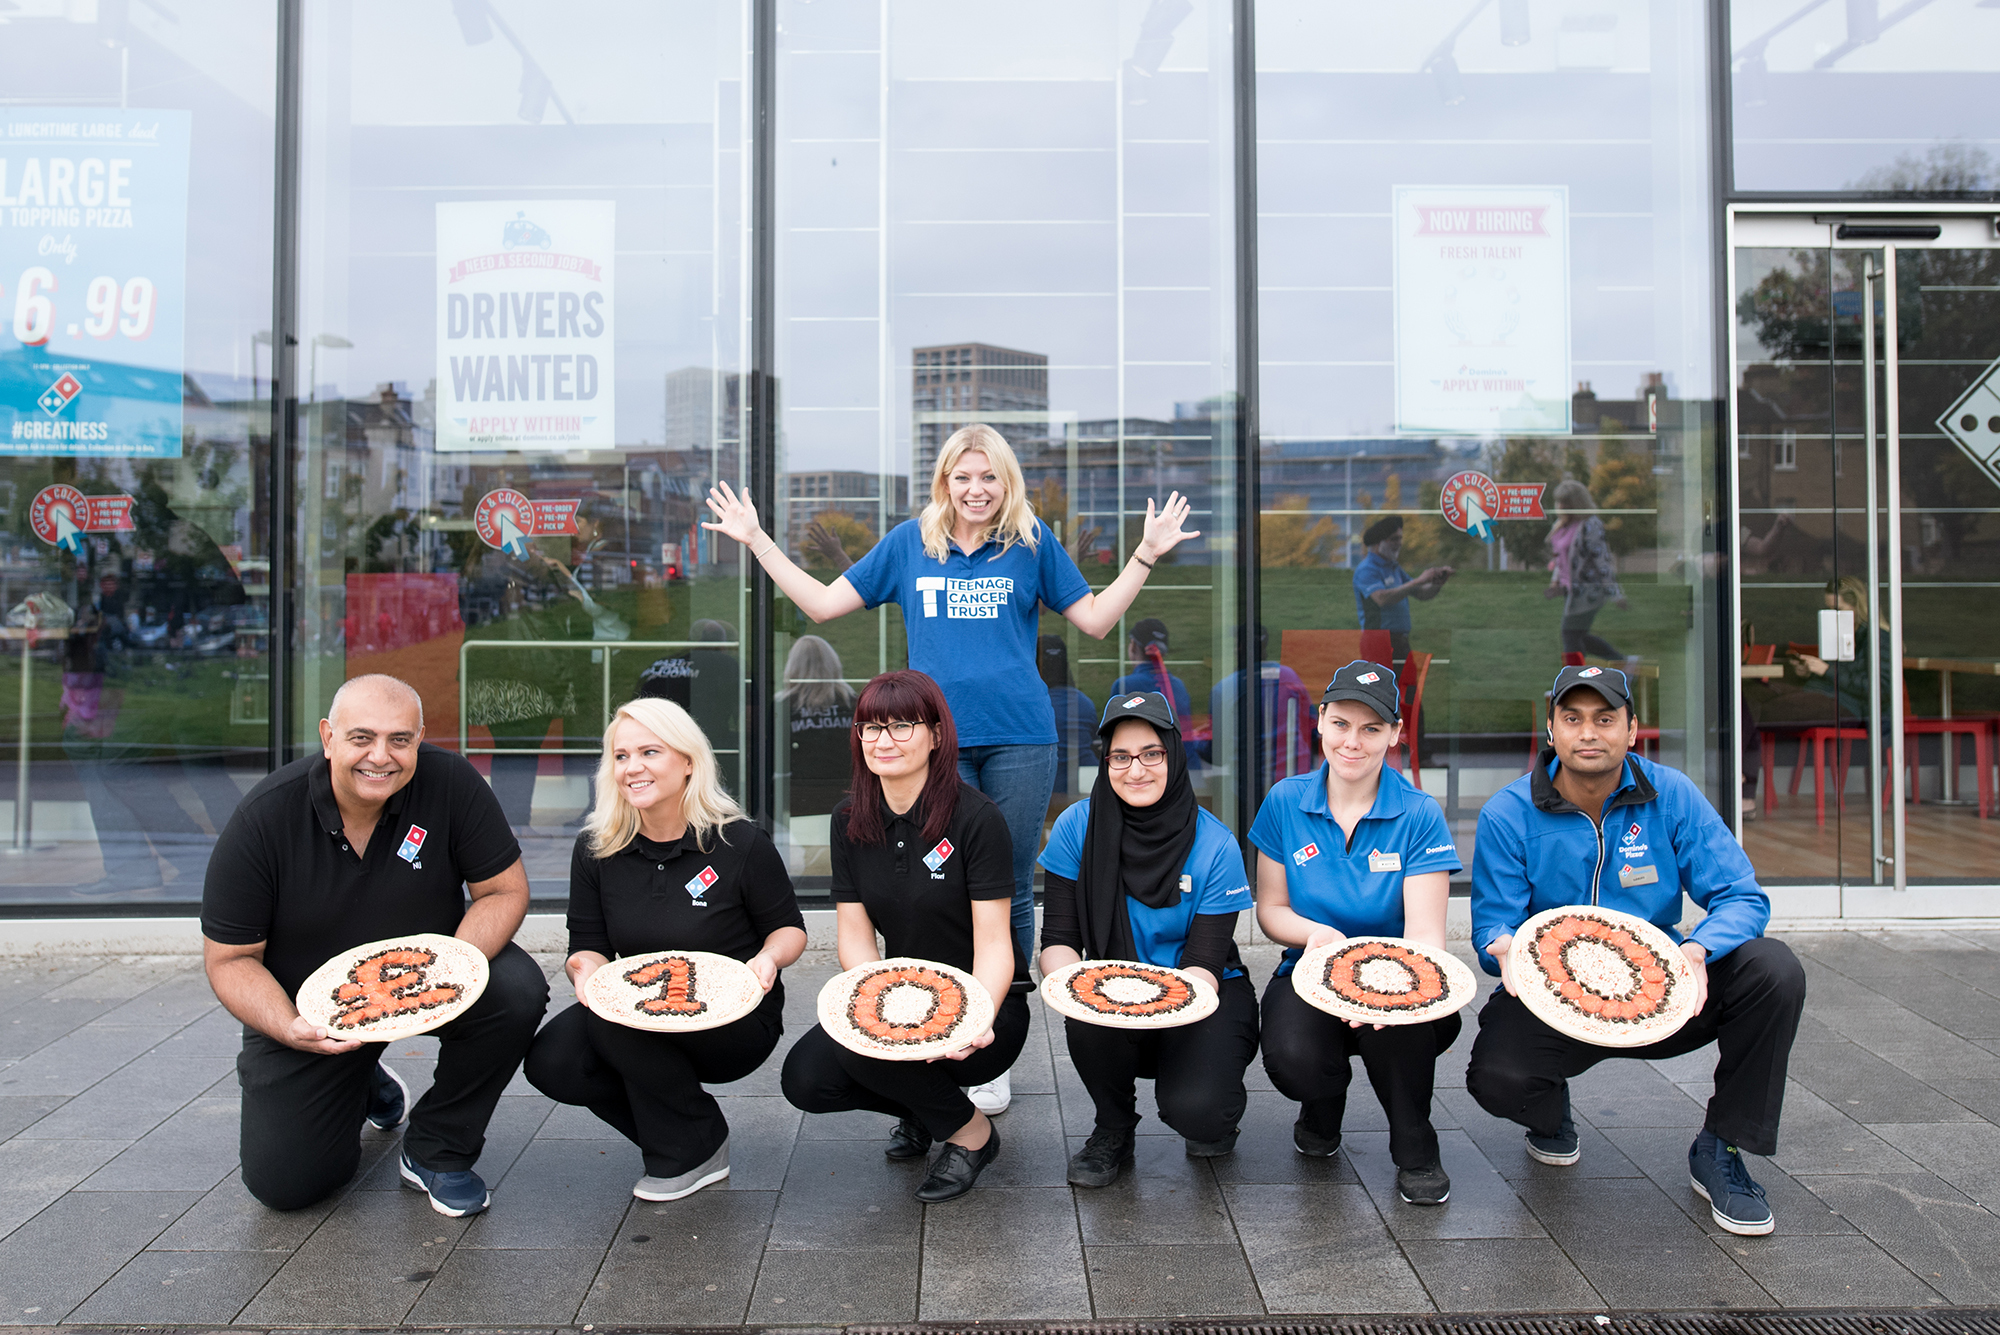 South east London pizza chains help raise funds to fight cancer